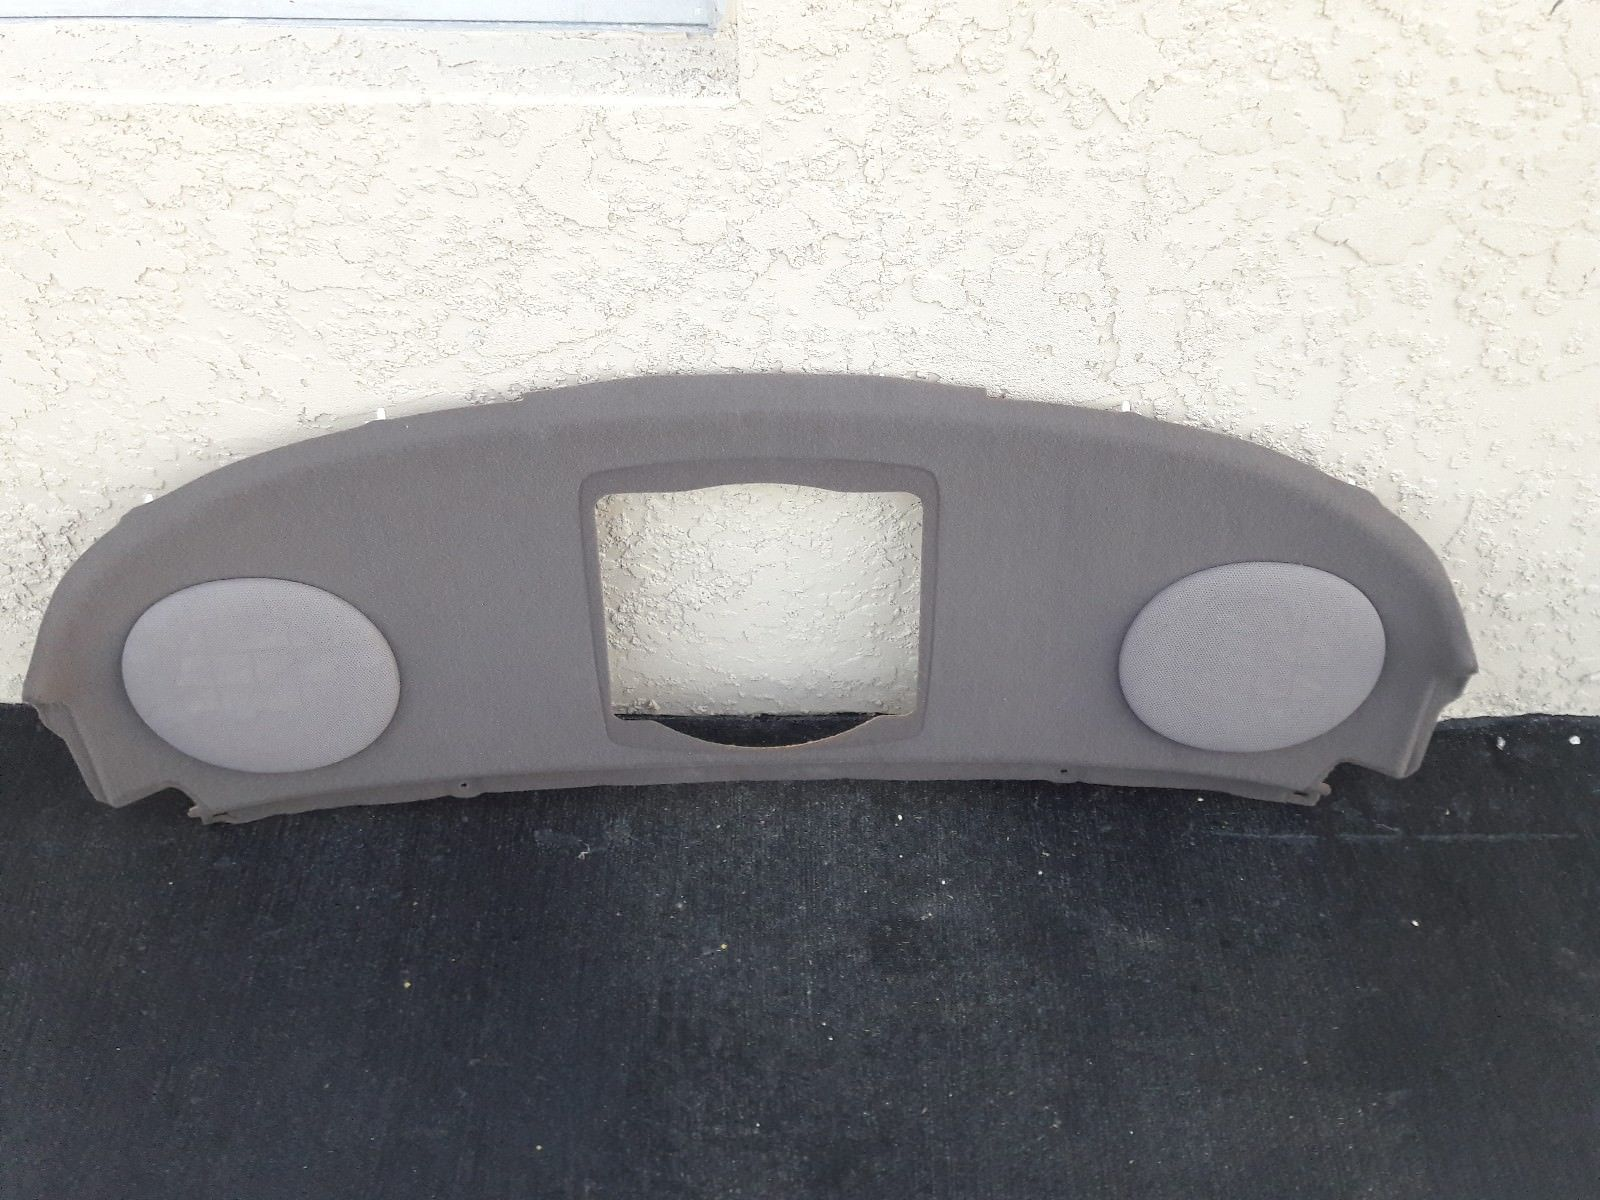 1992 93 94 95 96 97 Lexus SC400 SC300 rear speaker board parcel shelf tan panel Does not apply